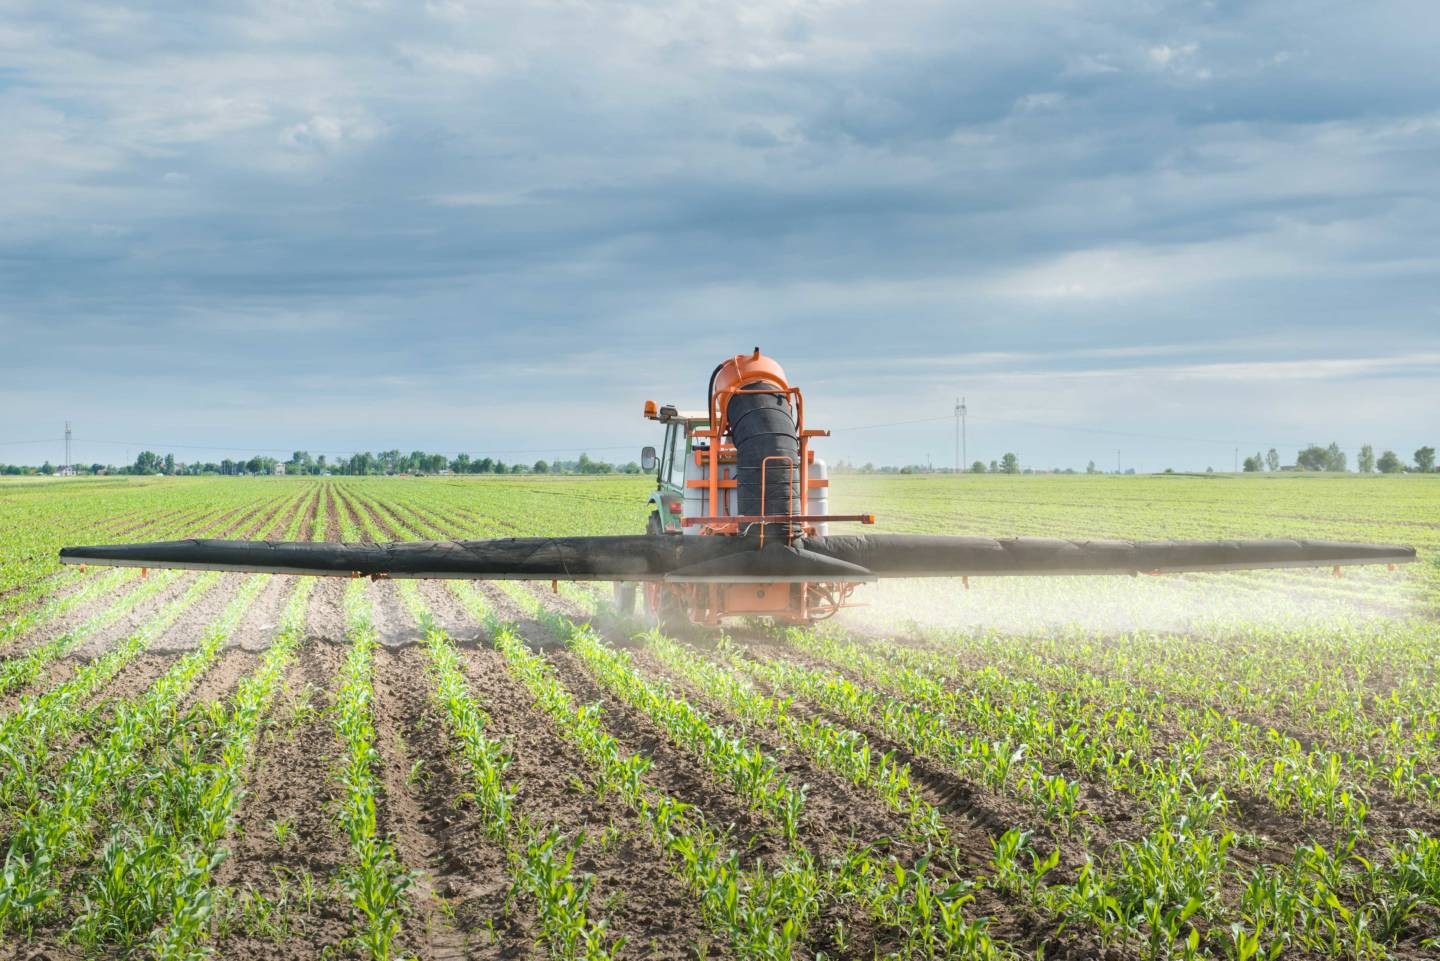 California Adds Atrazine to List of Toxic Chemicals, But No Ban